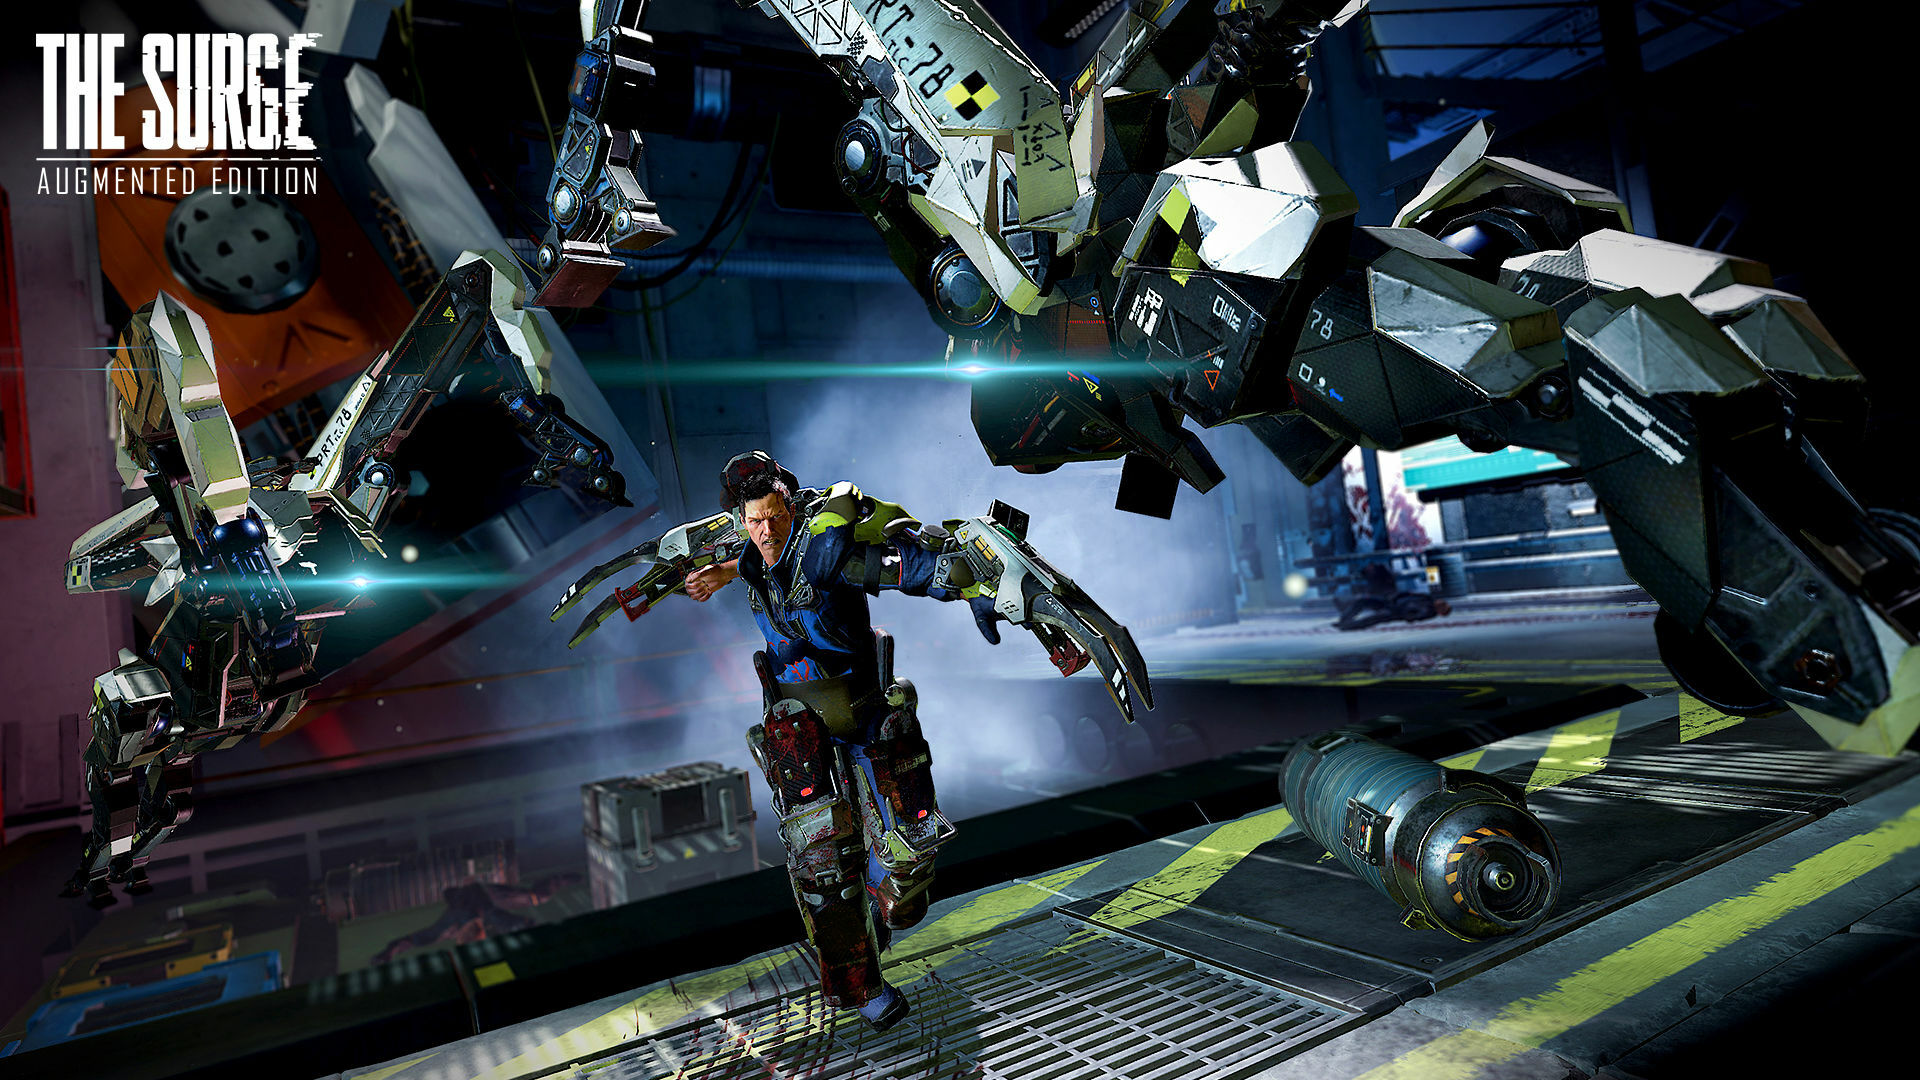 the-surge-augmented-edition-pc-screenshot-4